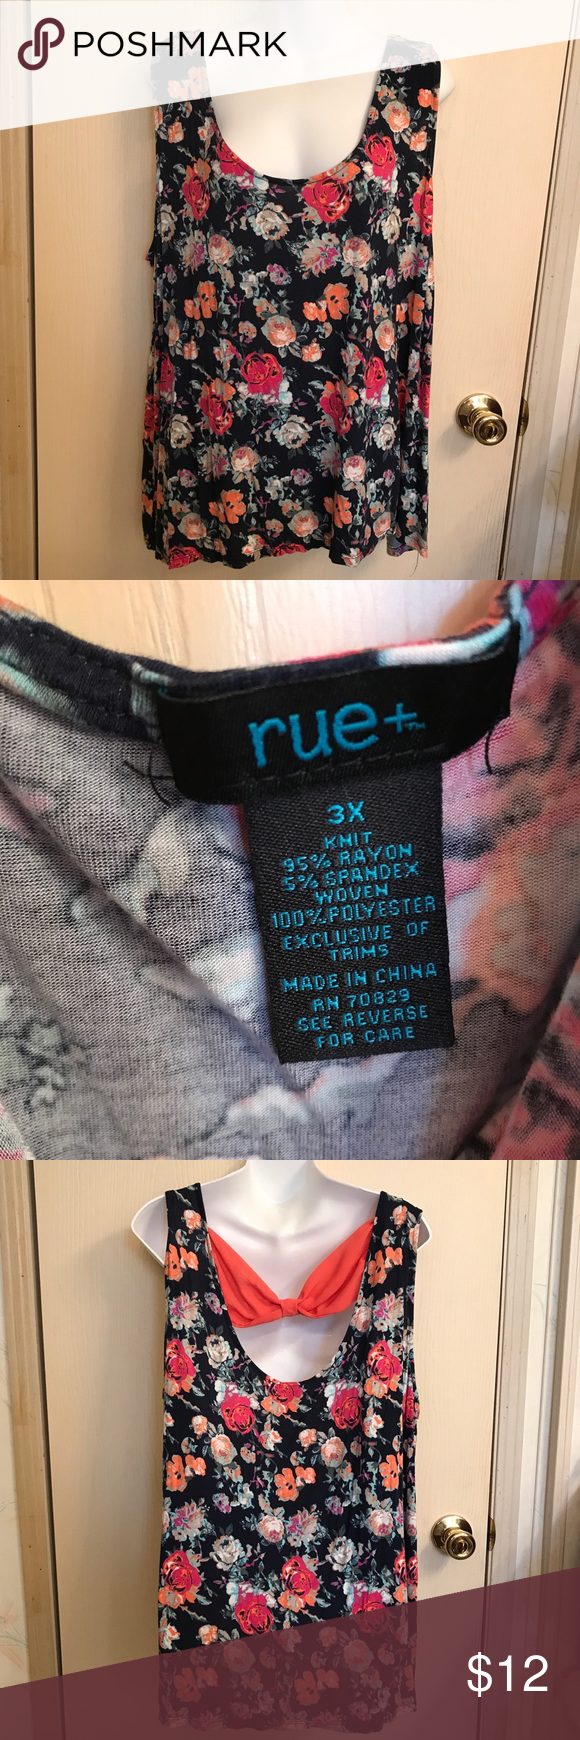 3x) rue 21 plus size floral tank top with bow *brand: rue 21 plus